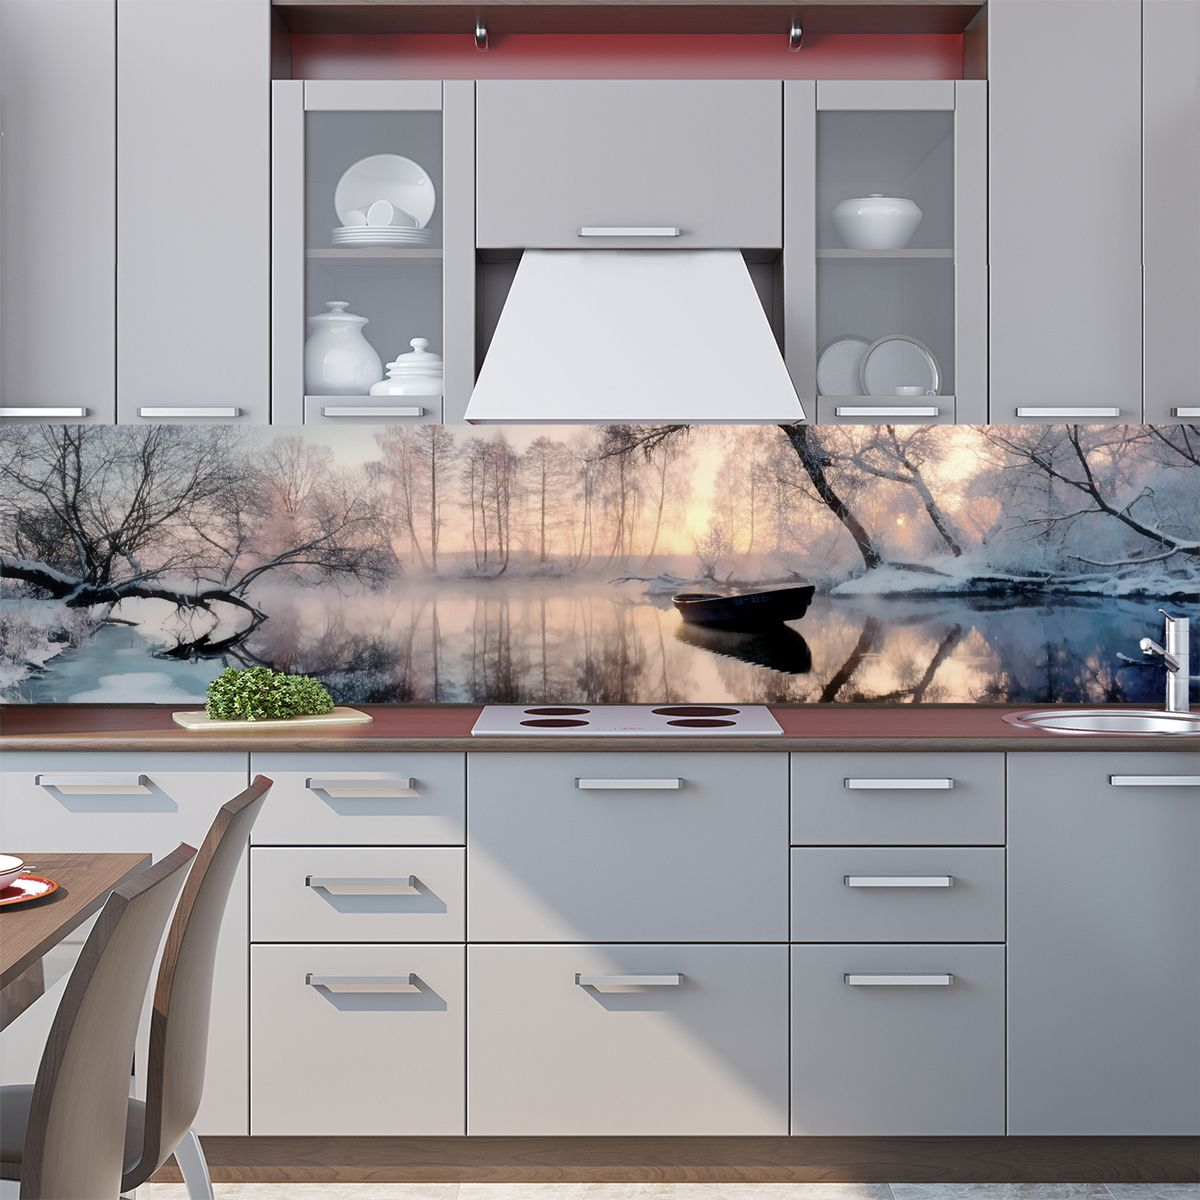 Kitchen Backsplash - Lake